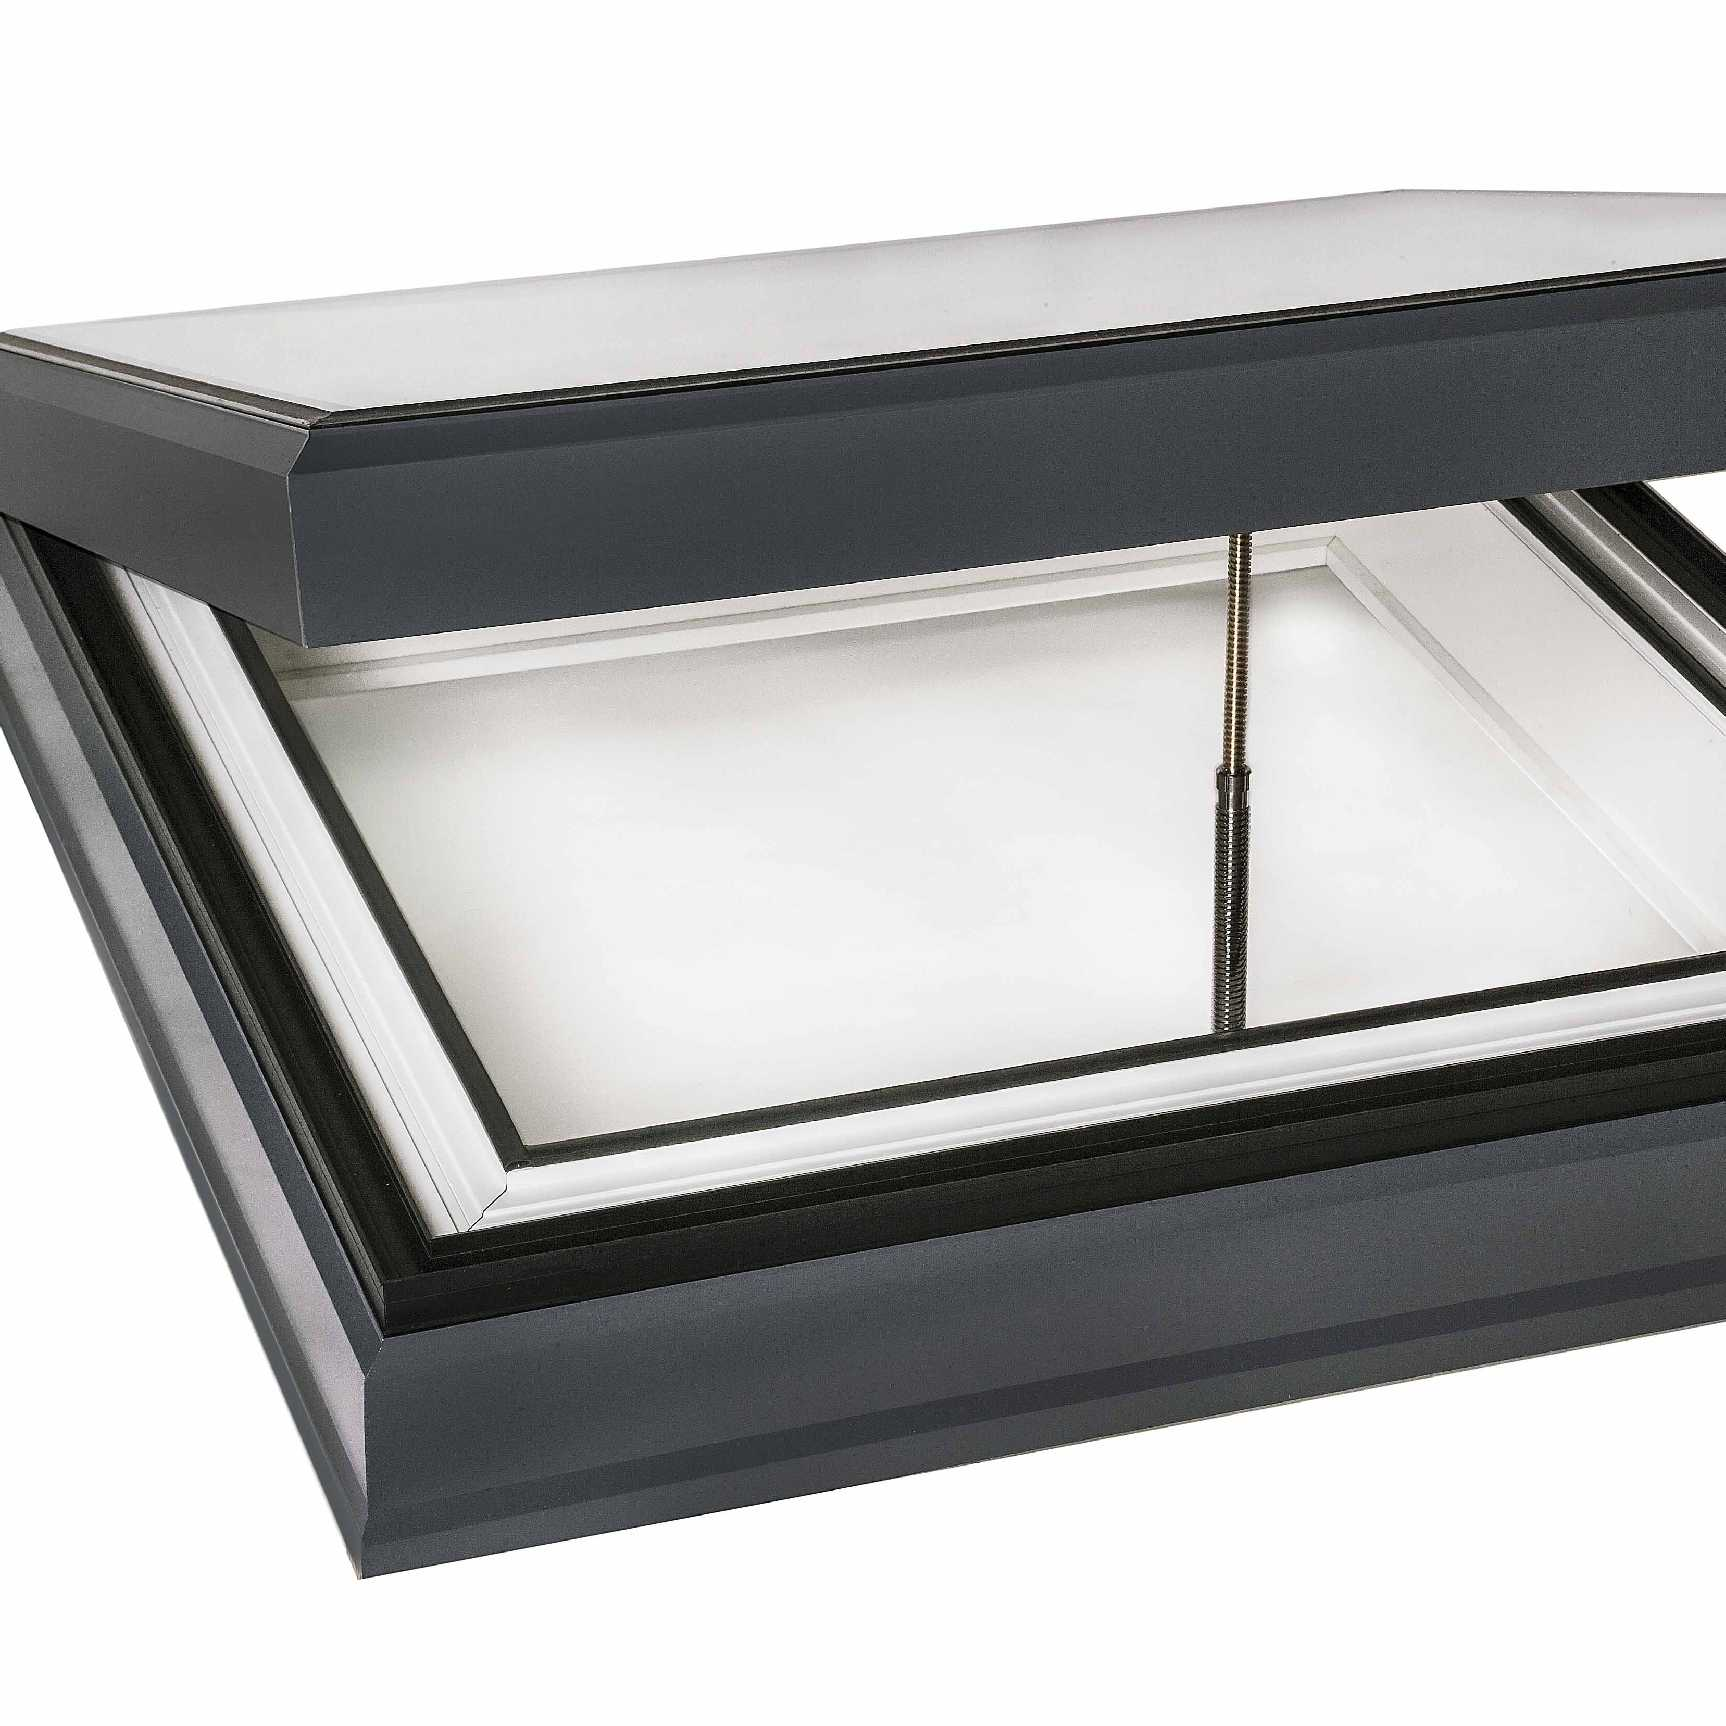 Great deals on EcoGard Flat Roof light, Double Glazed, Electric Opening, 1,000mm x 1,500mm